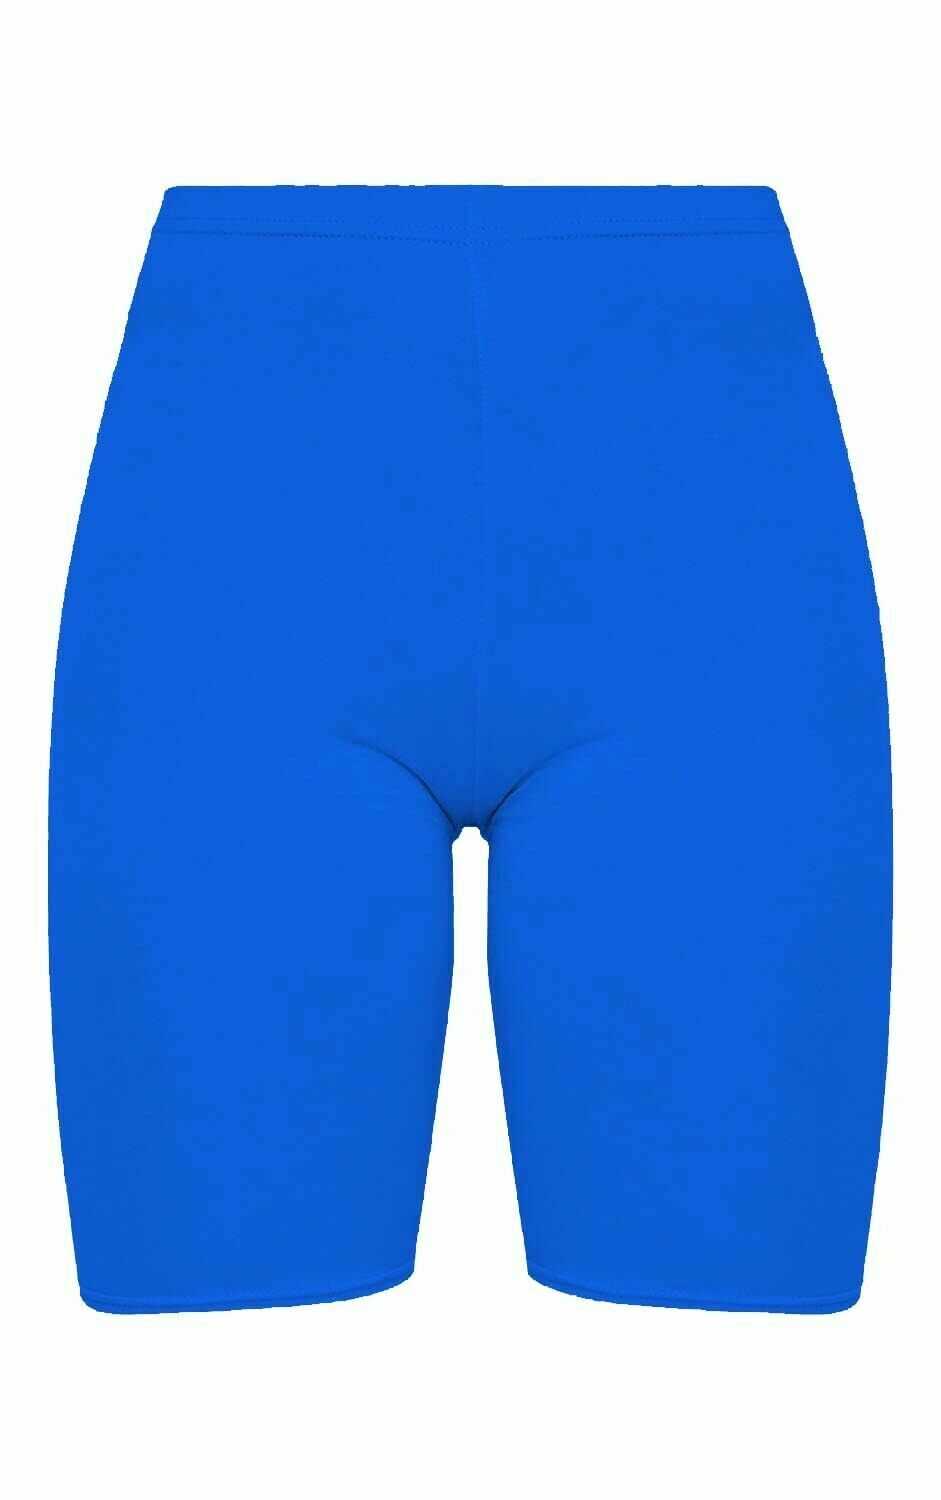 Crazy Chick Women Royal Blue Microfibre Cycling Shorts